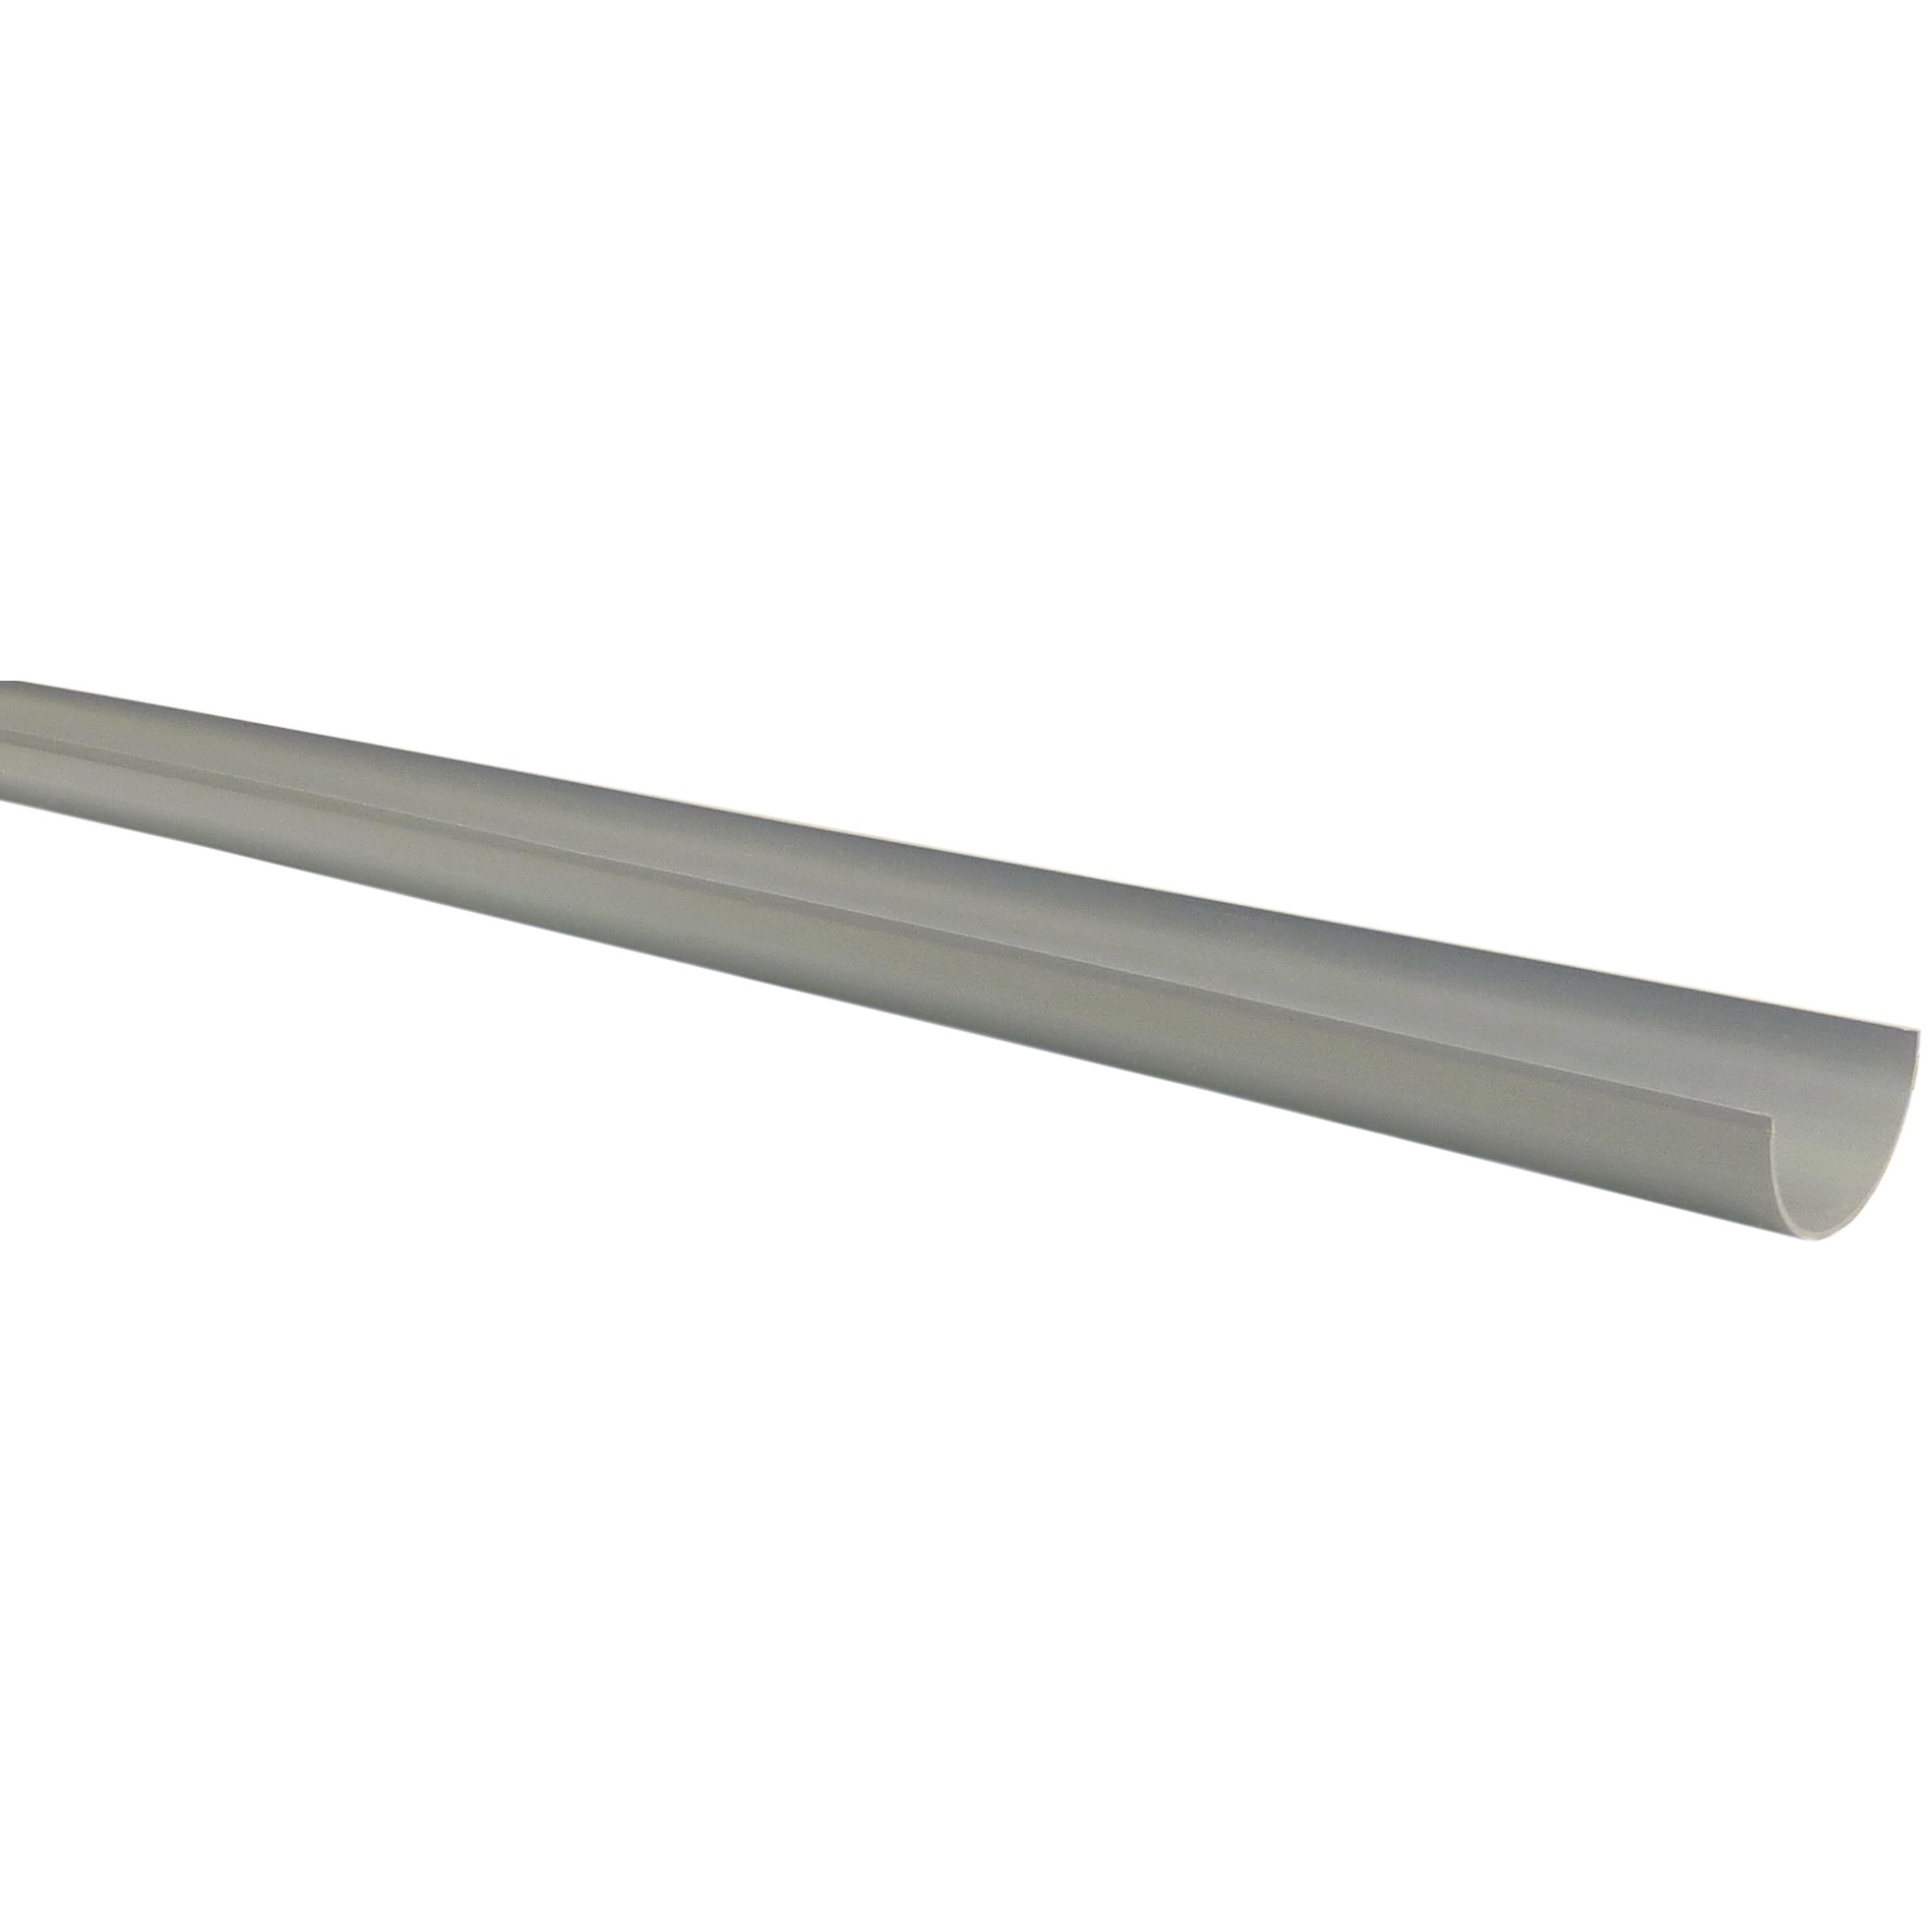 Polypipe 75mm Mini Half Round Gutter - Grey, 2 metre